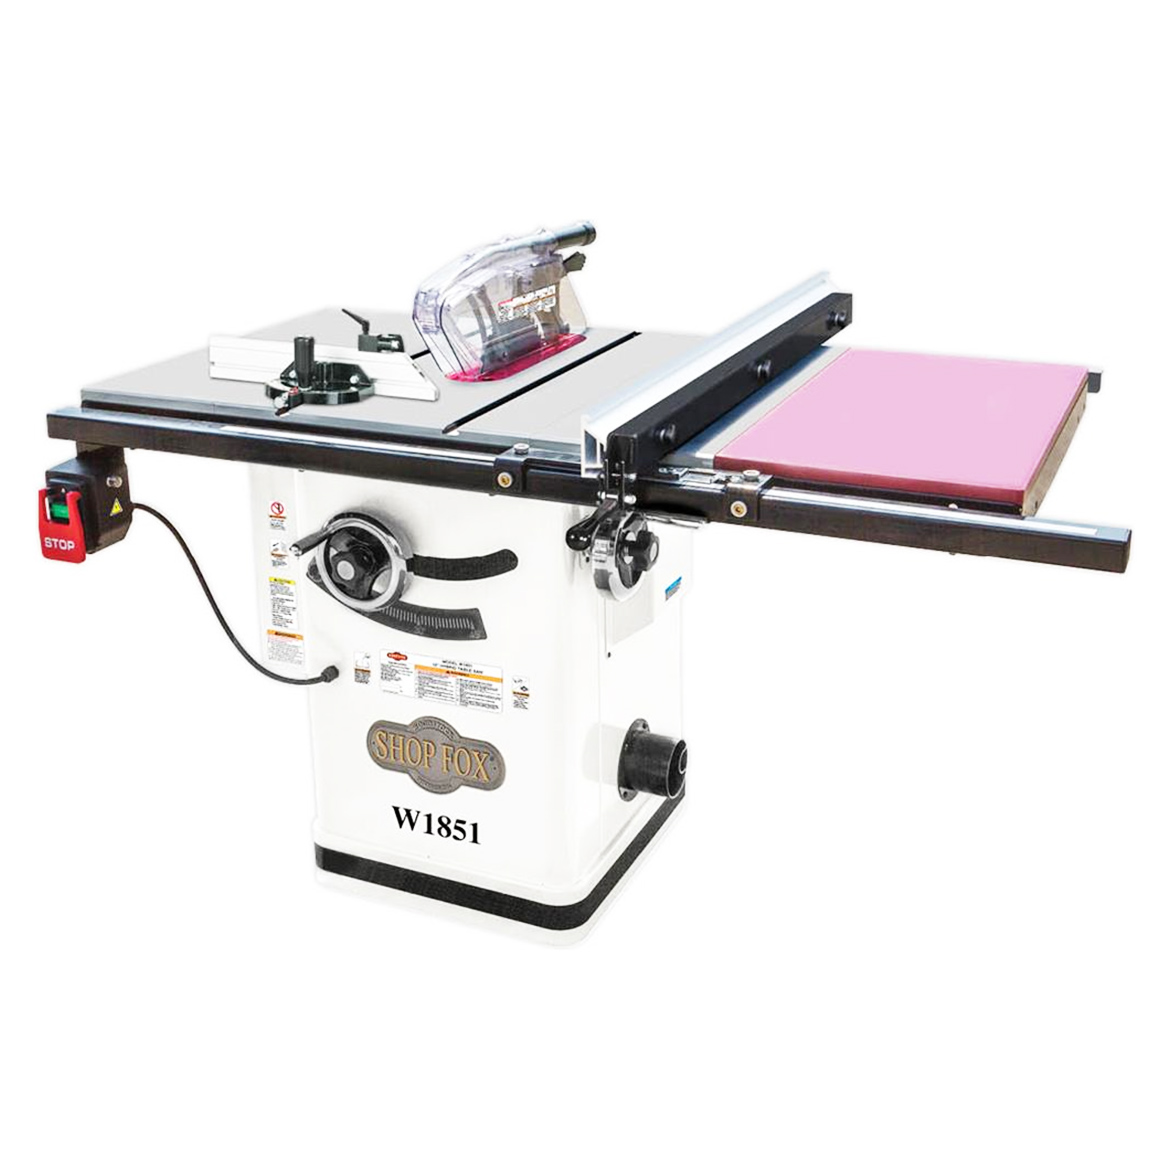 Shop Fox W1851 10-Inch 2-Hp Hybrid Cabinet Table Saw W/ Extension Table